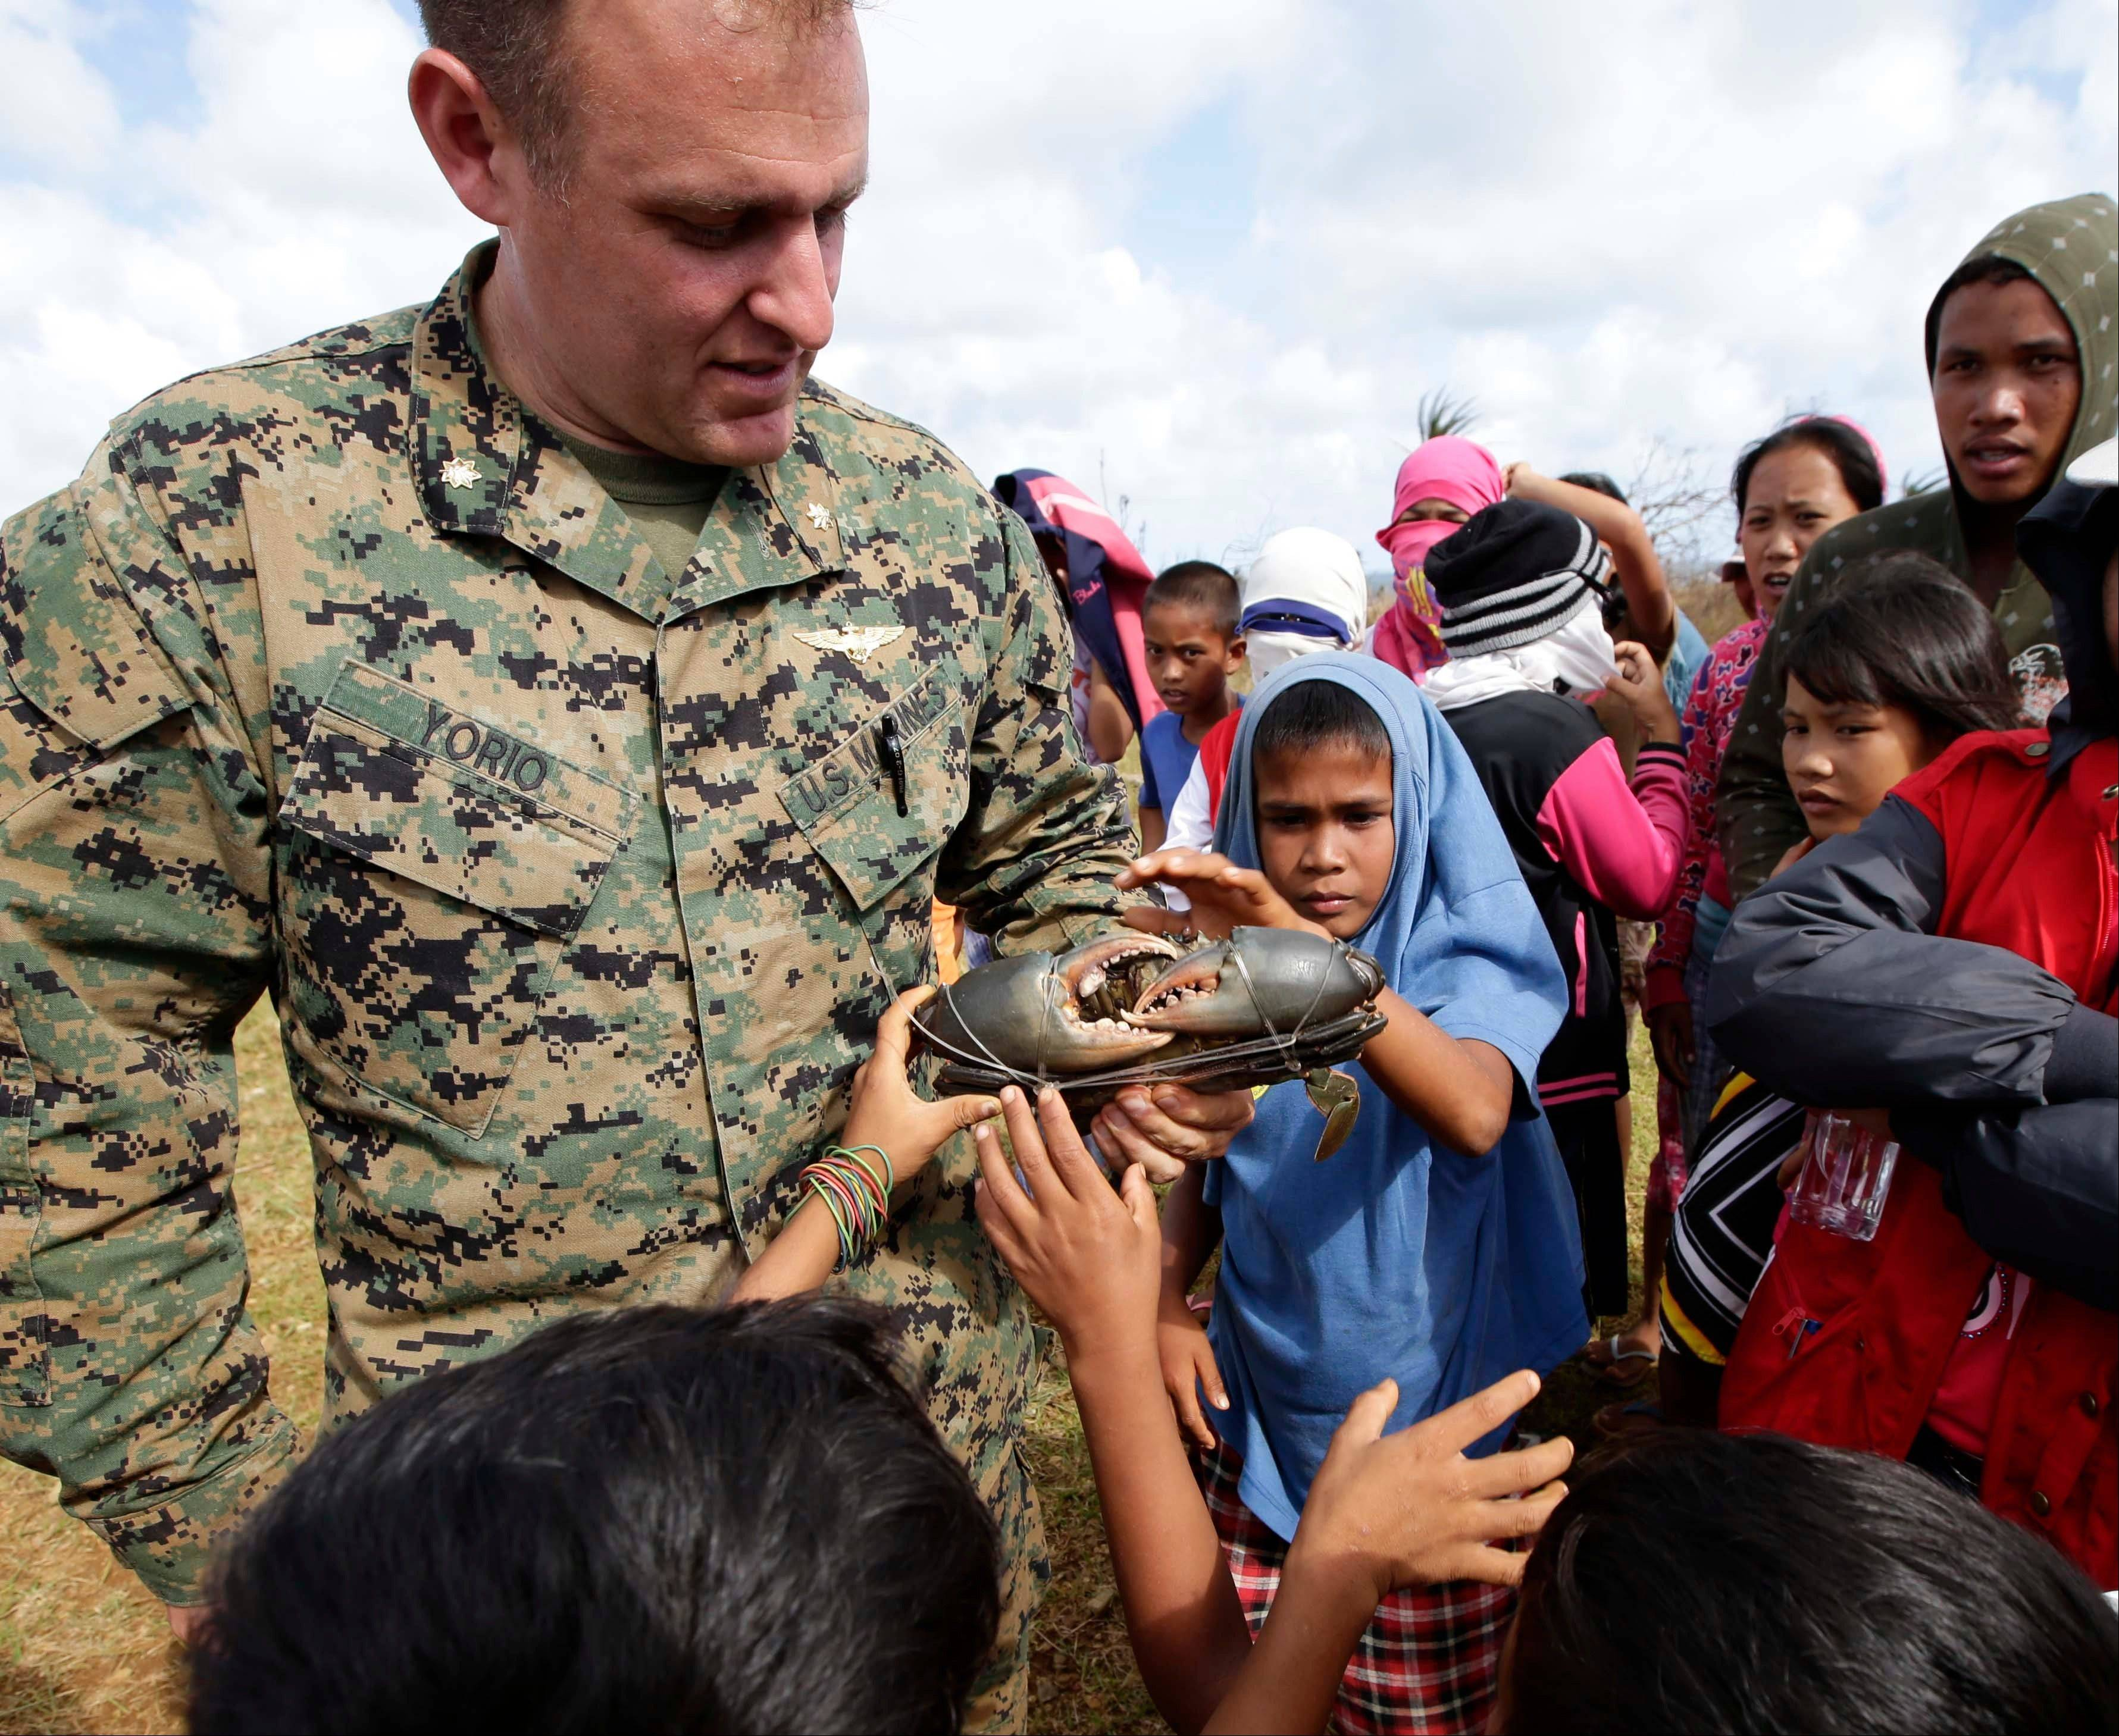 Marine Maj. John Orio examines a crab given to him Saturday by a resident in appreciation of the U.S. dropping off relief supplies on Manicani island, Eastern Samar province in central Philippines.